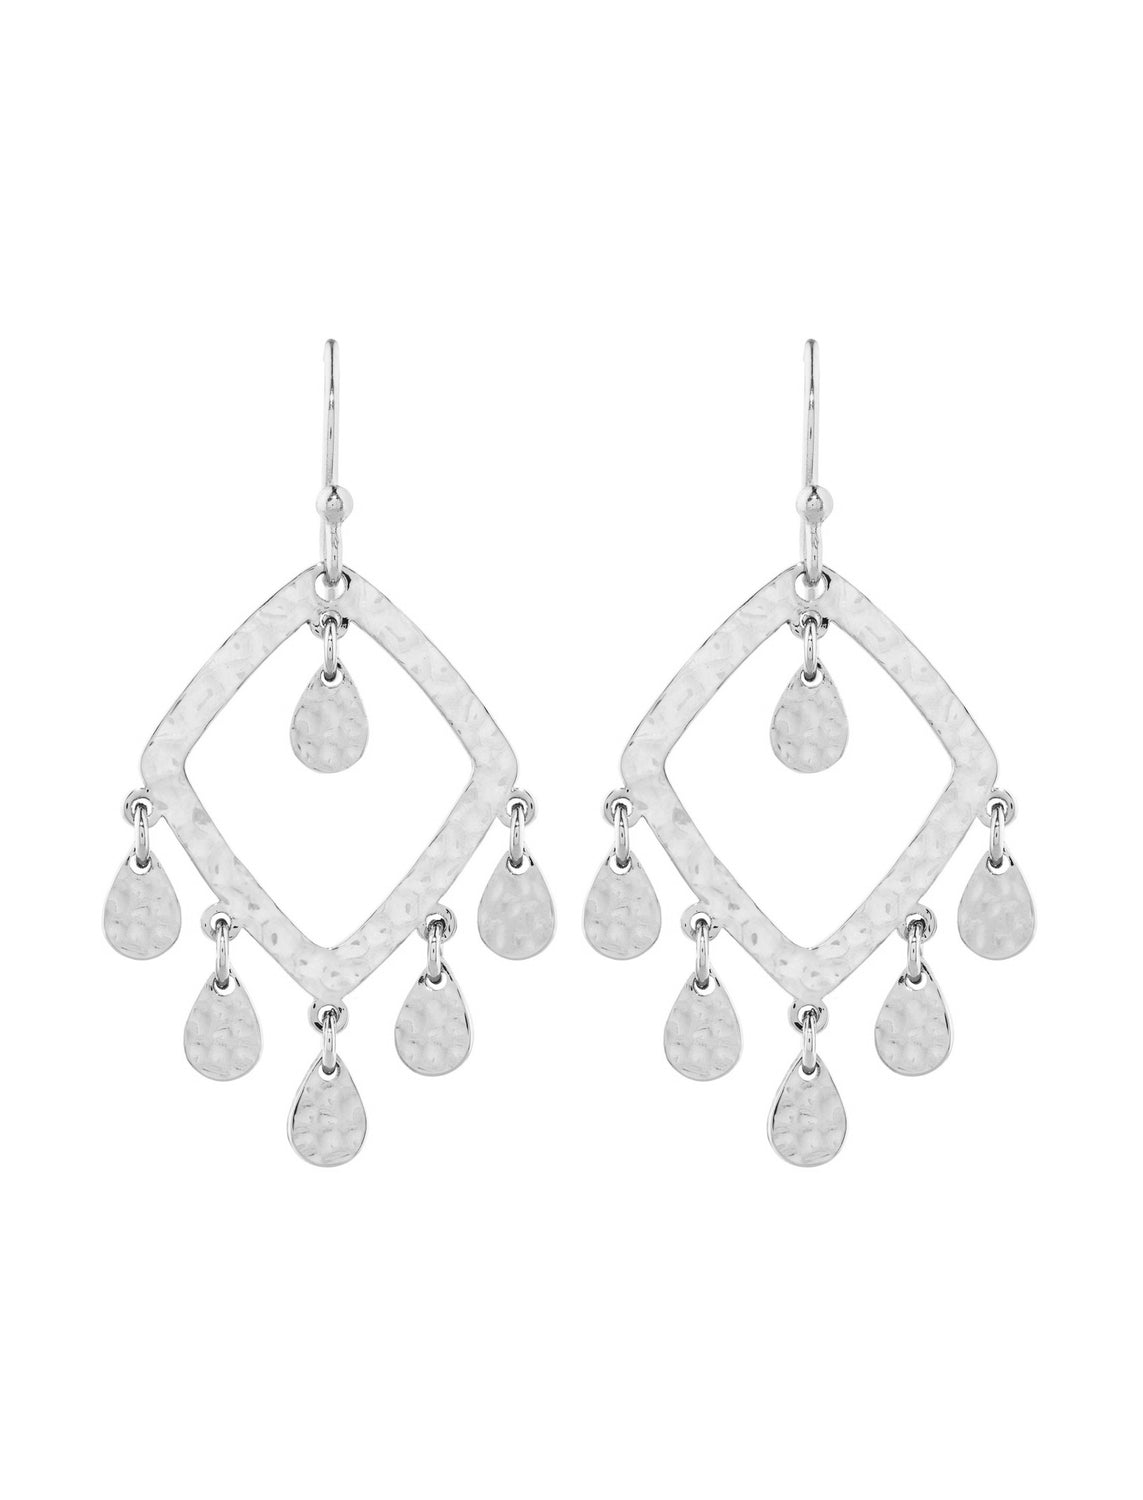 Nicole Fendel Esme Small Earrings - The Artisan Storeroom